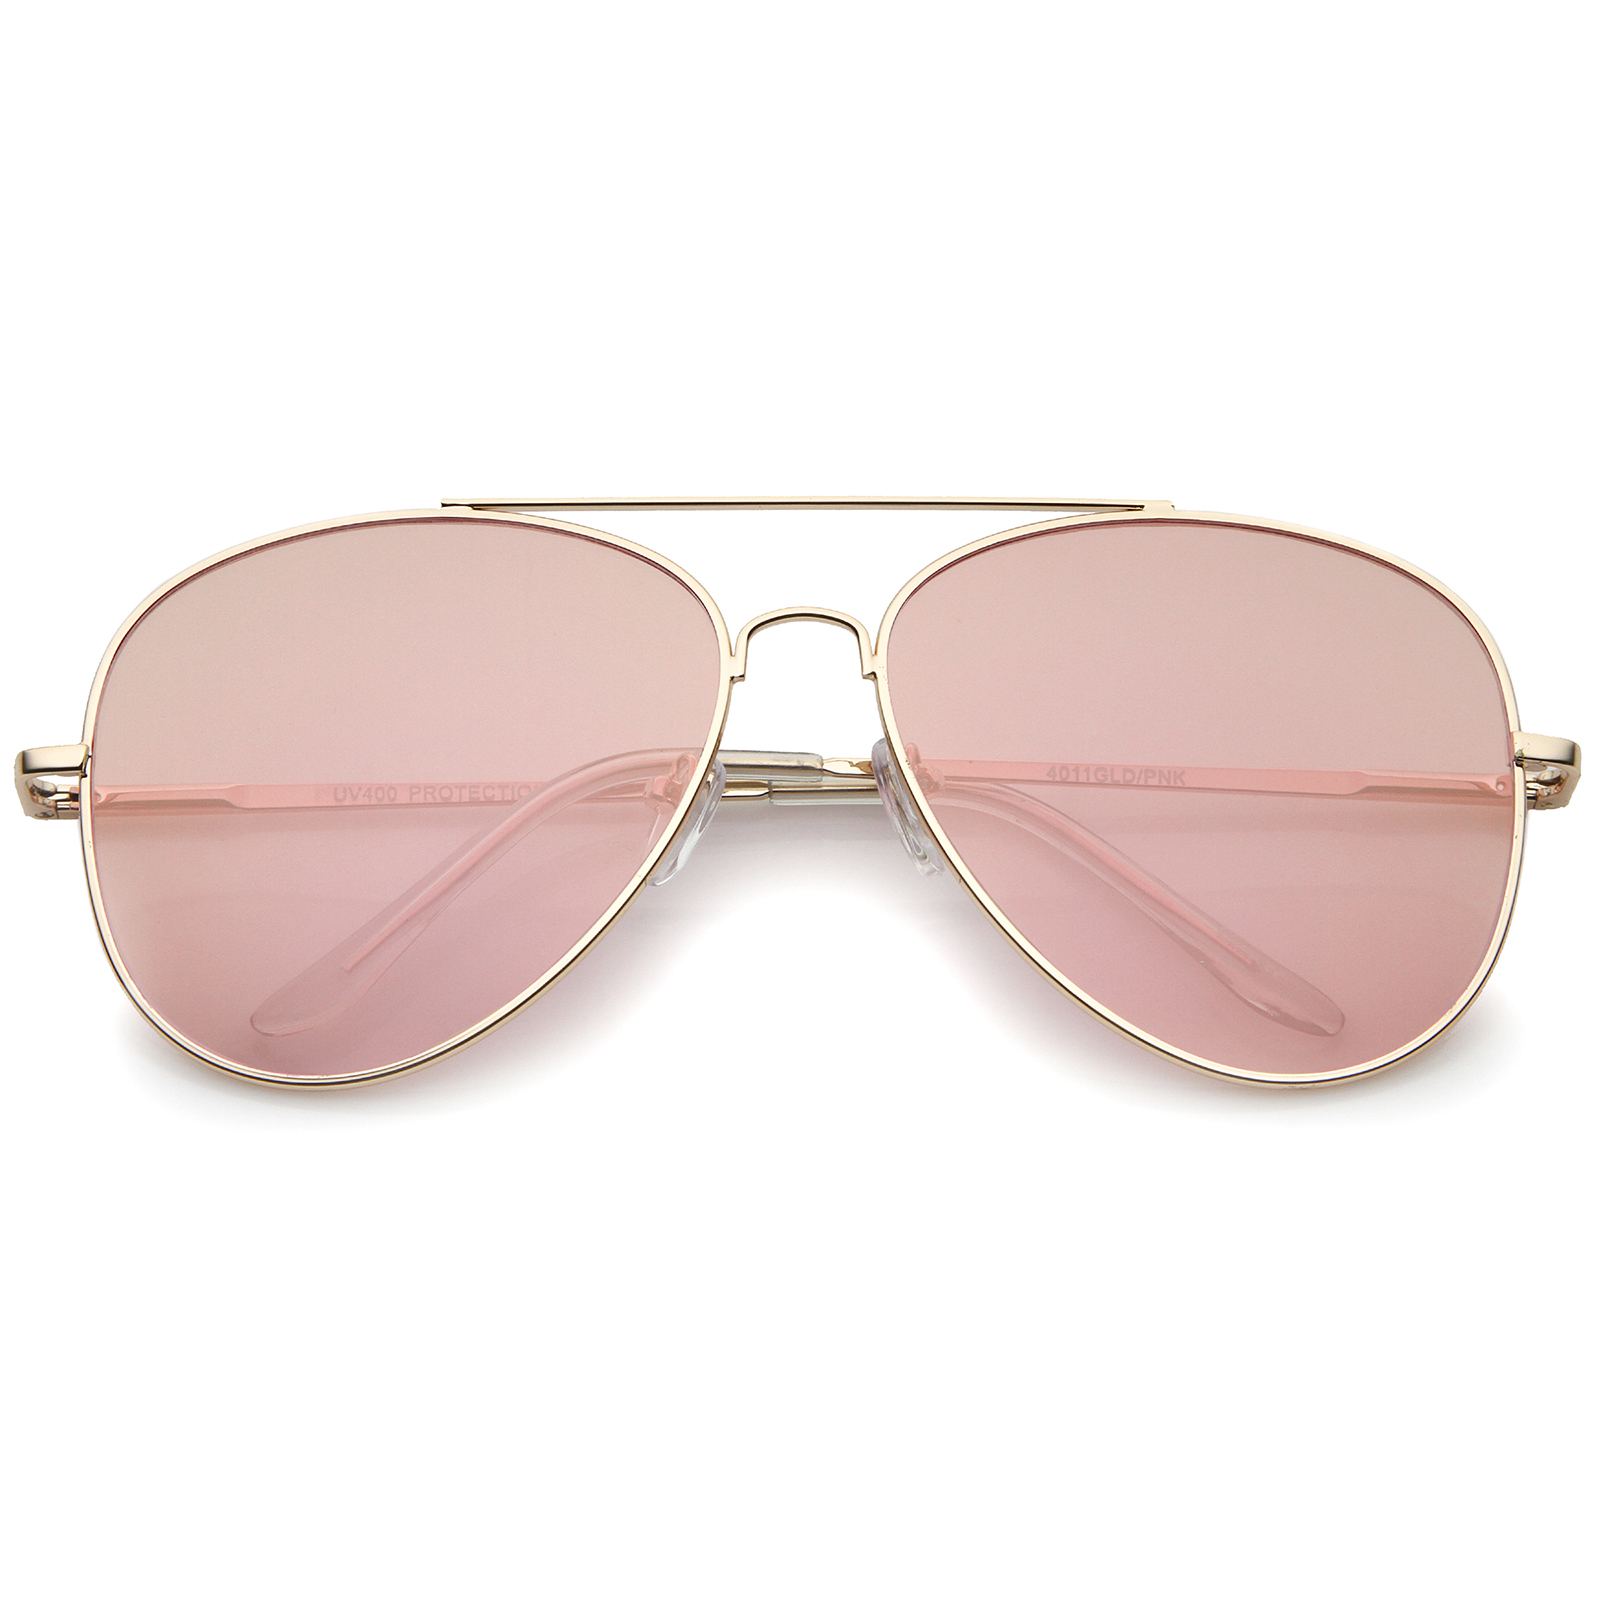 Aviator Sunglasses: urgut.ga - Your Online Sunglasses Store! Get 5% in rewards with Club O! Ray Ban RB Classic Aviator /58 Gold Metal Sunglasses with Green Polarized Lens 55mm. 1 Review. Quick View Burberry BE Light Gold Metal Aviator Sunglasses Brown Gradient Lens. 4 Reviews.